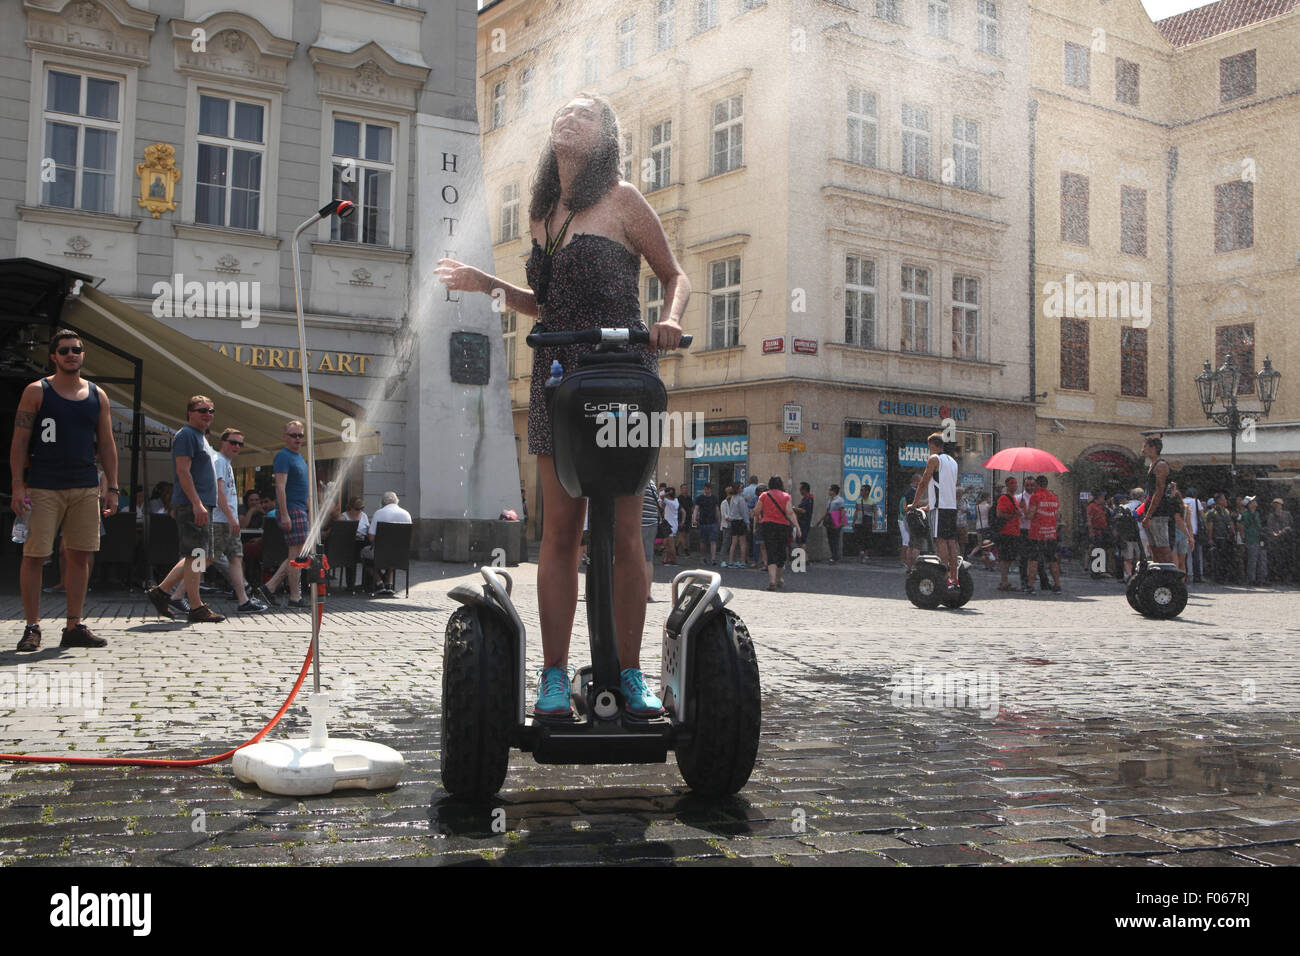 Prague, Czech Republic. 7th August 2015. A young woman riding a Segway tries to cool off from a water sprinkler - Stock Image